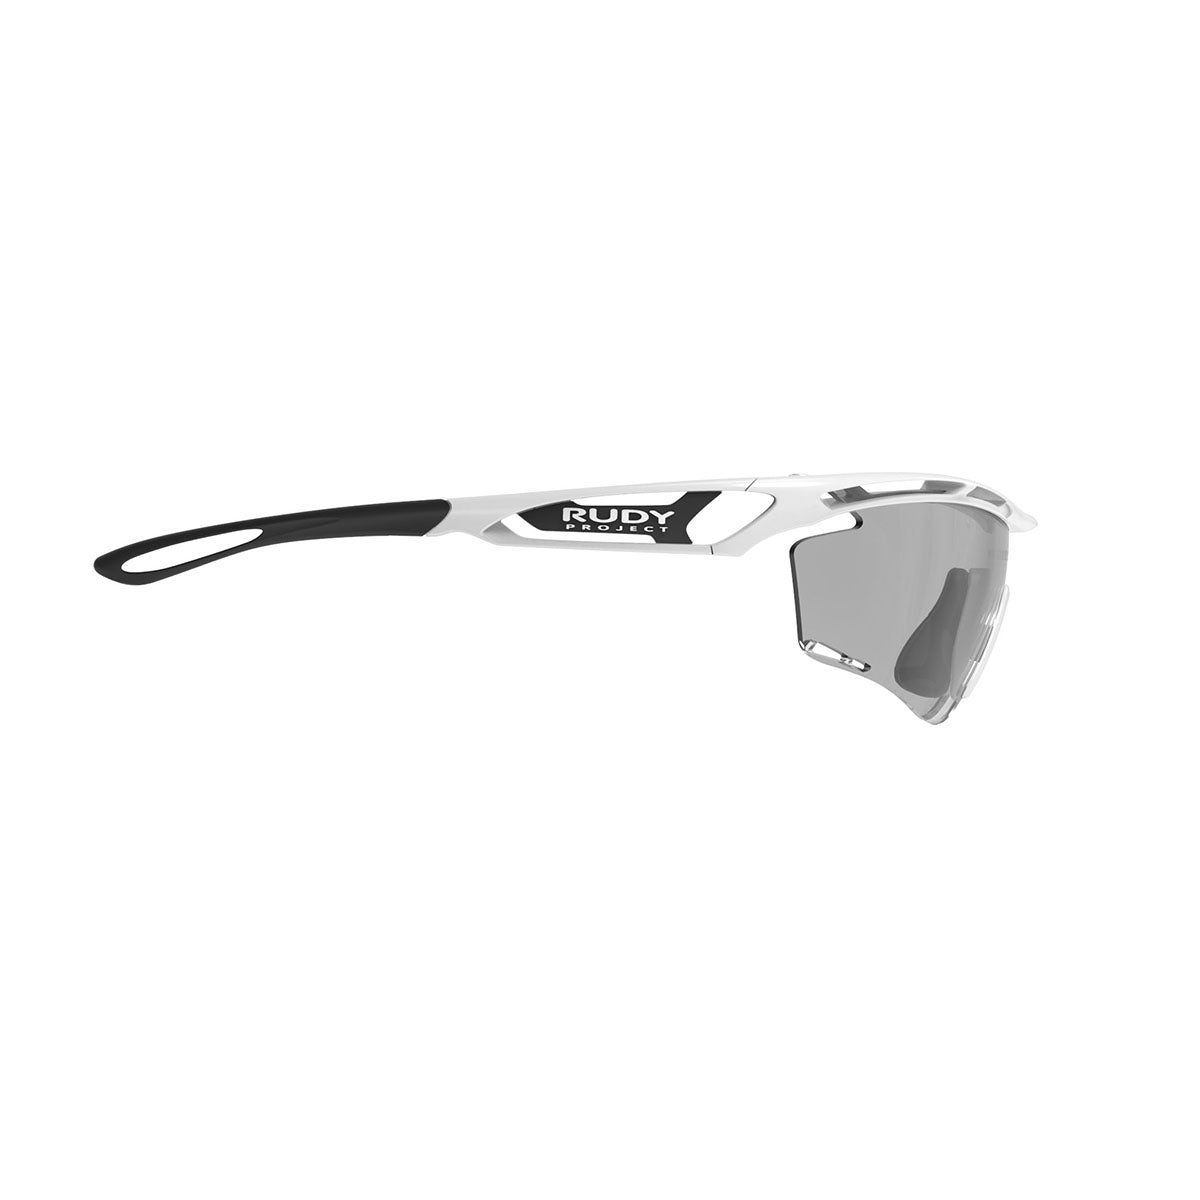 Rudy Project - Tralyx - frame color: White Gloss - lens color: ImpactX-2 Photochromic Clear to Black - photo angle: Side Variant Hover Image